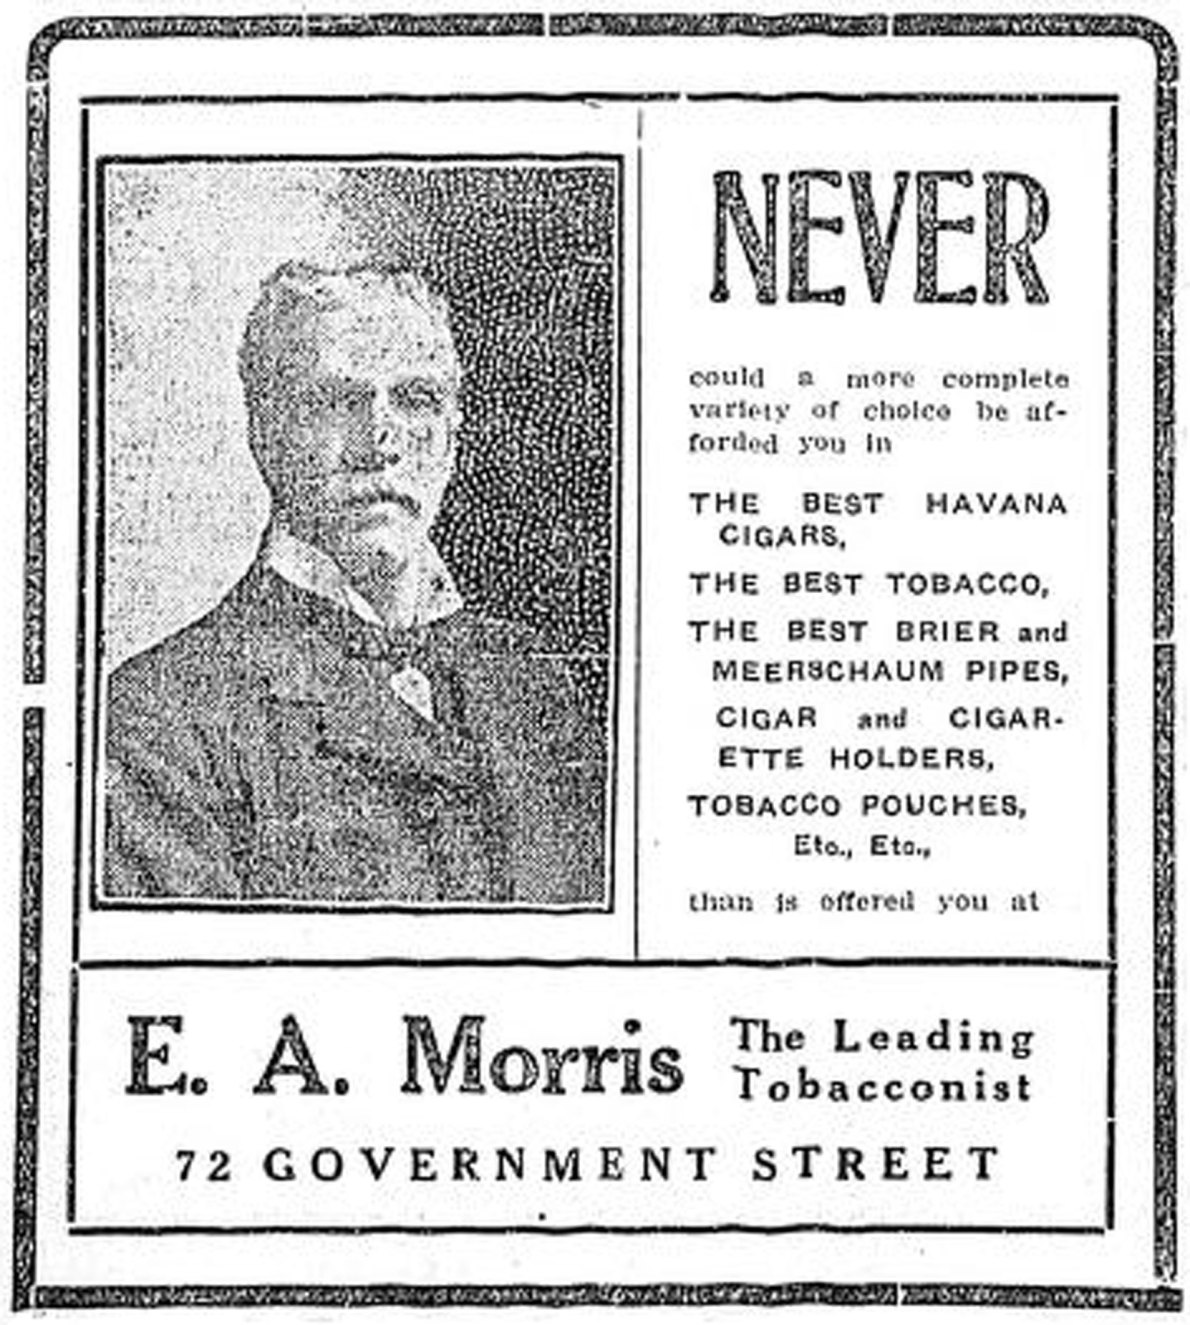 1907 advertisement for E.A. Morris, The Leading Tobacconist. 72 Government Street is now 1116 Government Street and E.A. Morris is still in business at that location. (Victoria Online Sightseeing Tours collection)